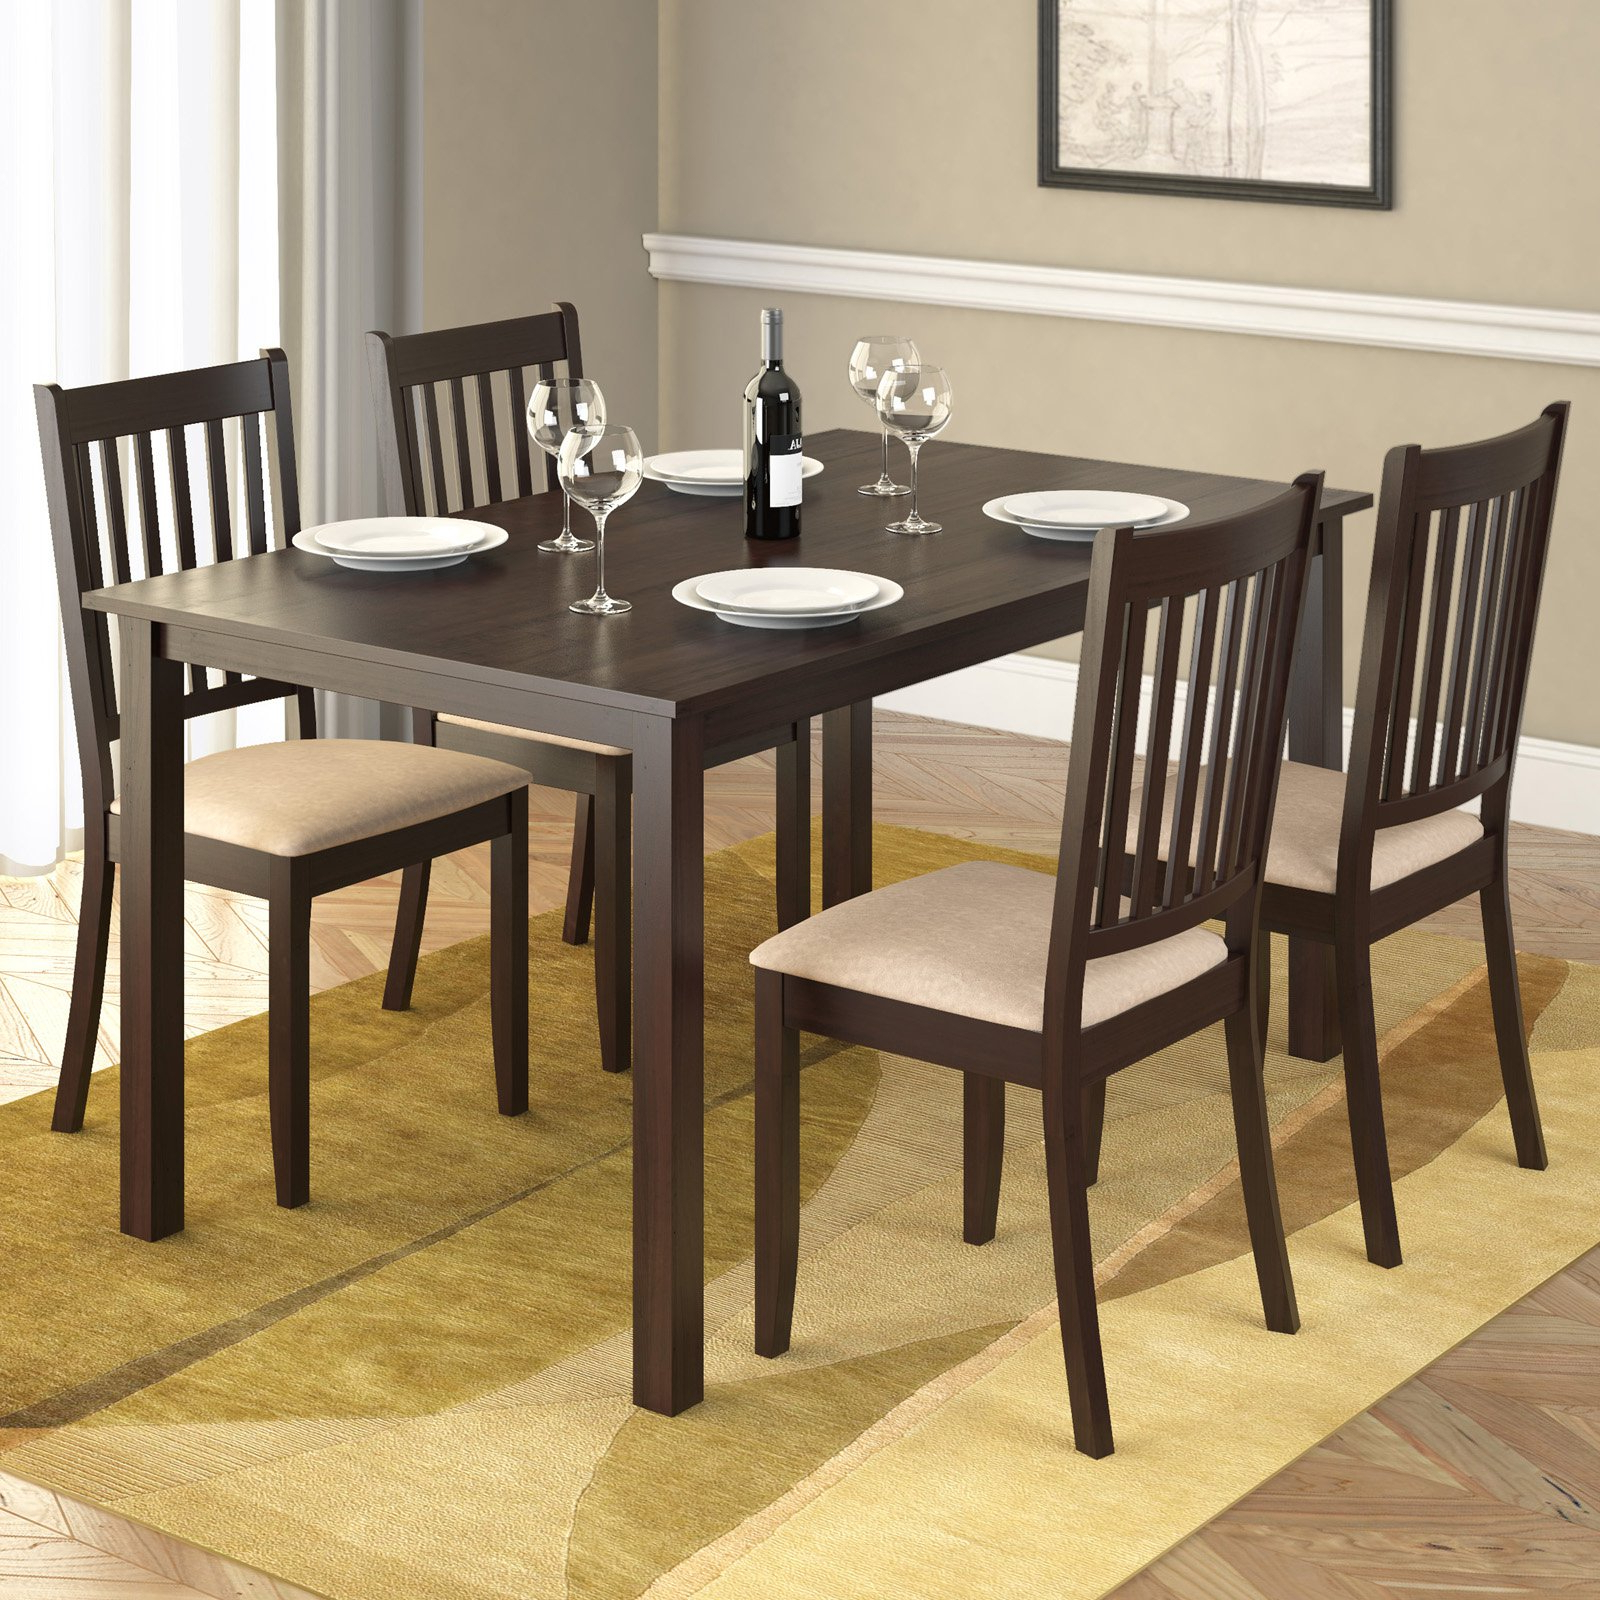 Corliving Atwood 5 Piece Dining Table Set With Beige Microfiber Within Best And Newest Rani 4 Door Sideboards (Gallery 13 of 20)